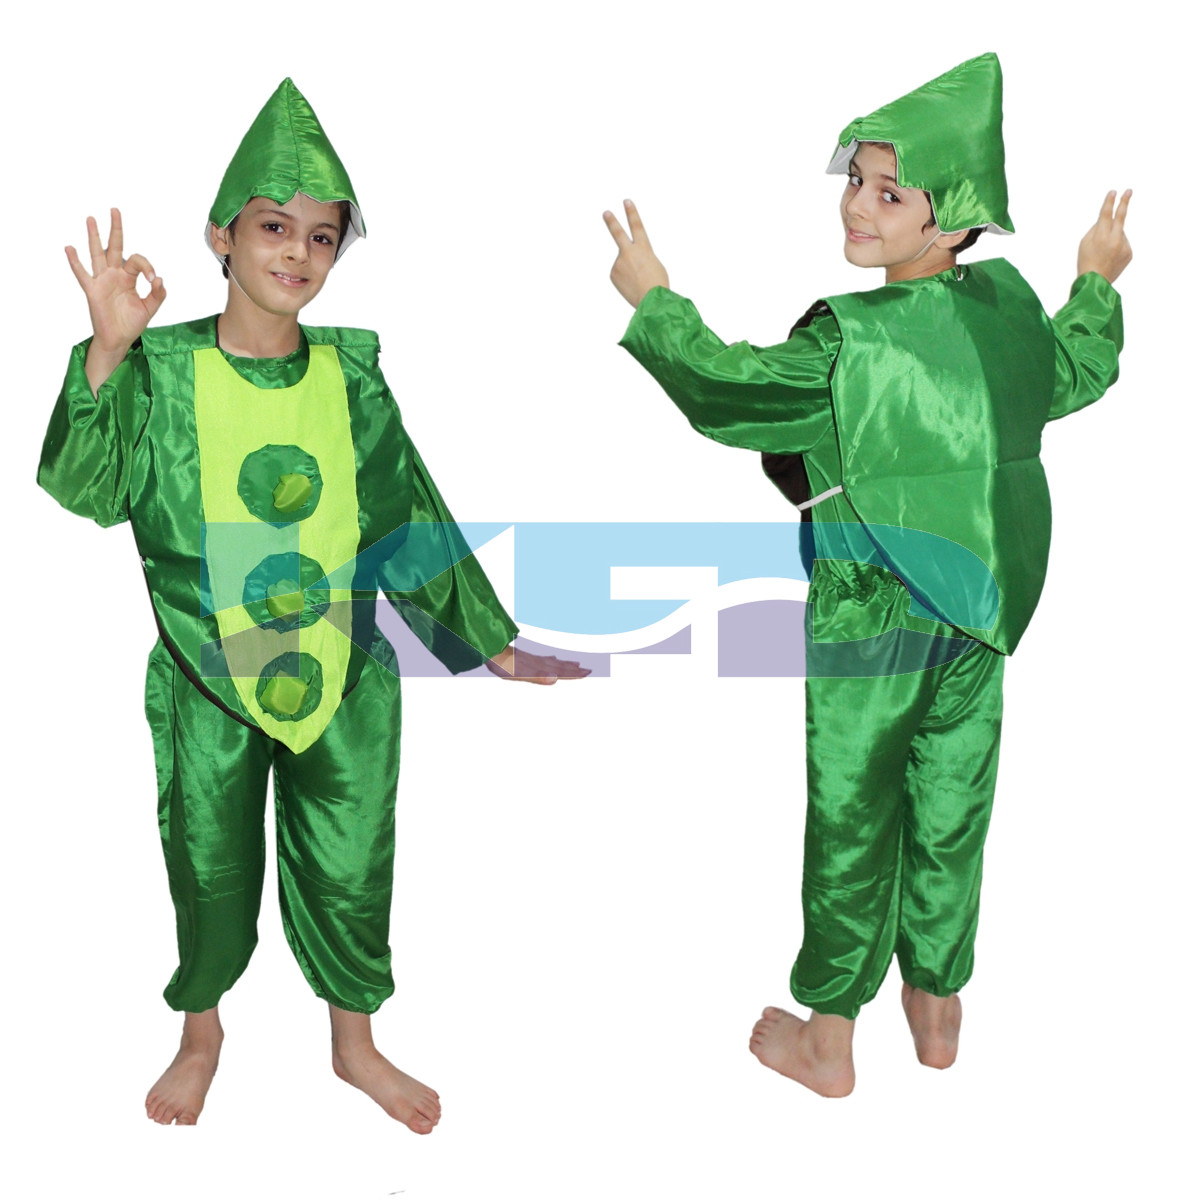 Peas fancy dress for kids,Vegetables Costume for School Annual function/Theme Party/Competition/Stage Shows Dress